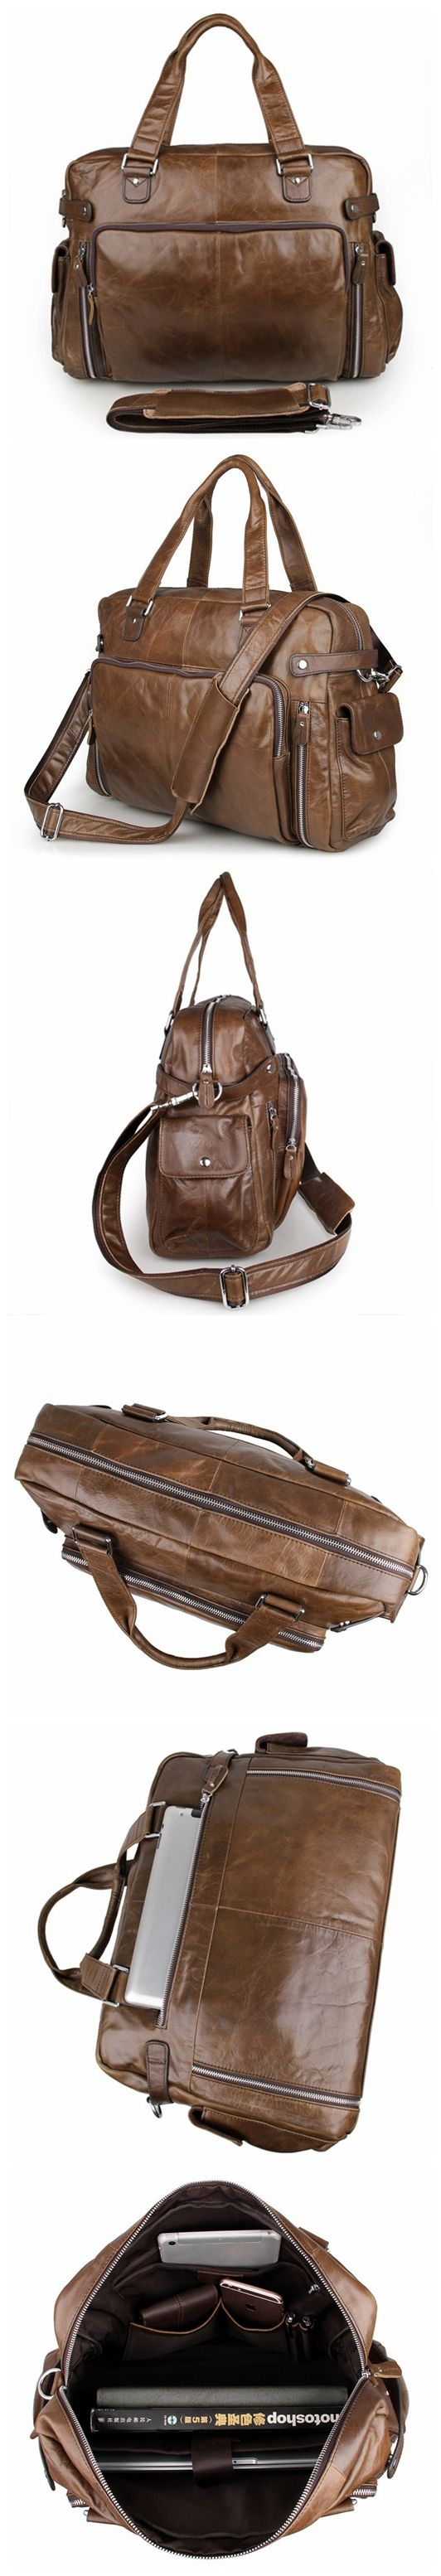 100% Genuine Leather Chocolate Unisex Handbags Laptop Bag Large Size